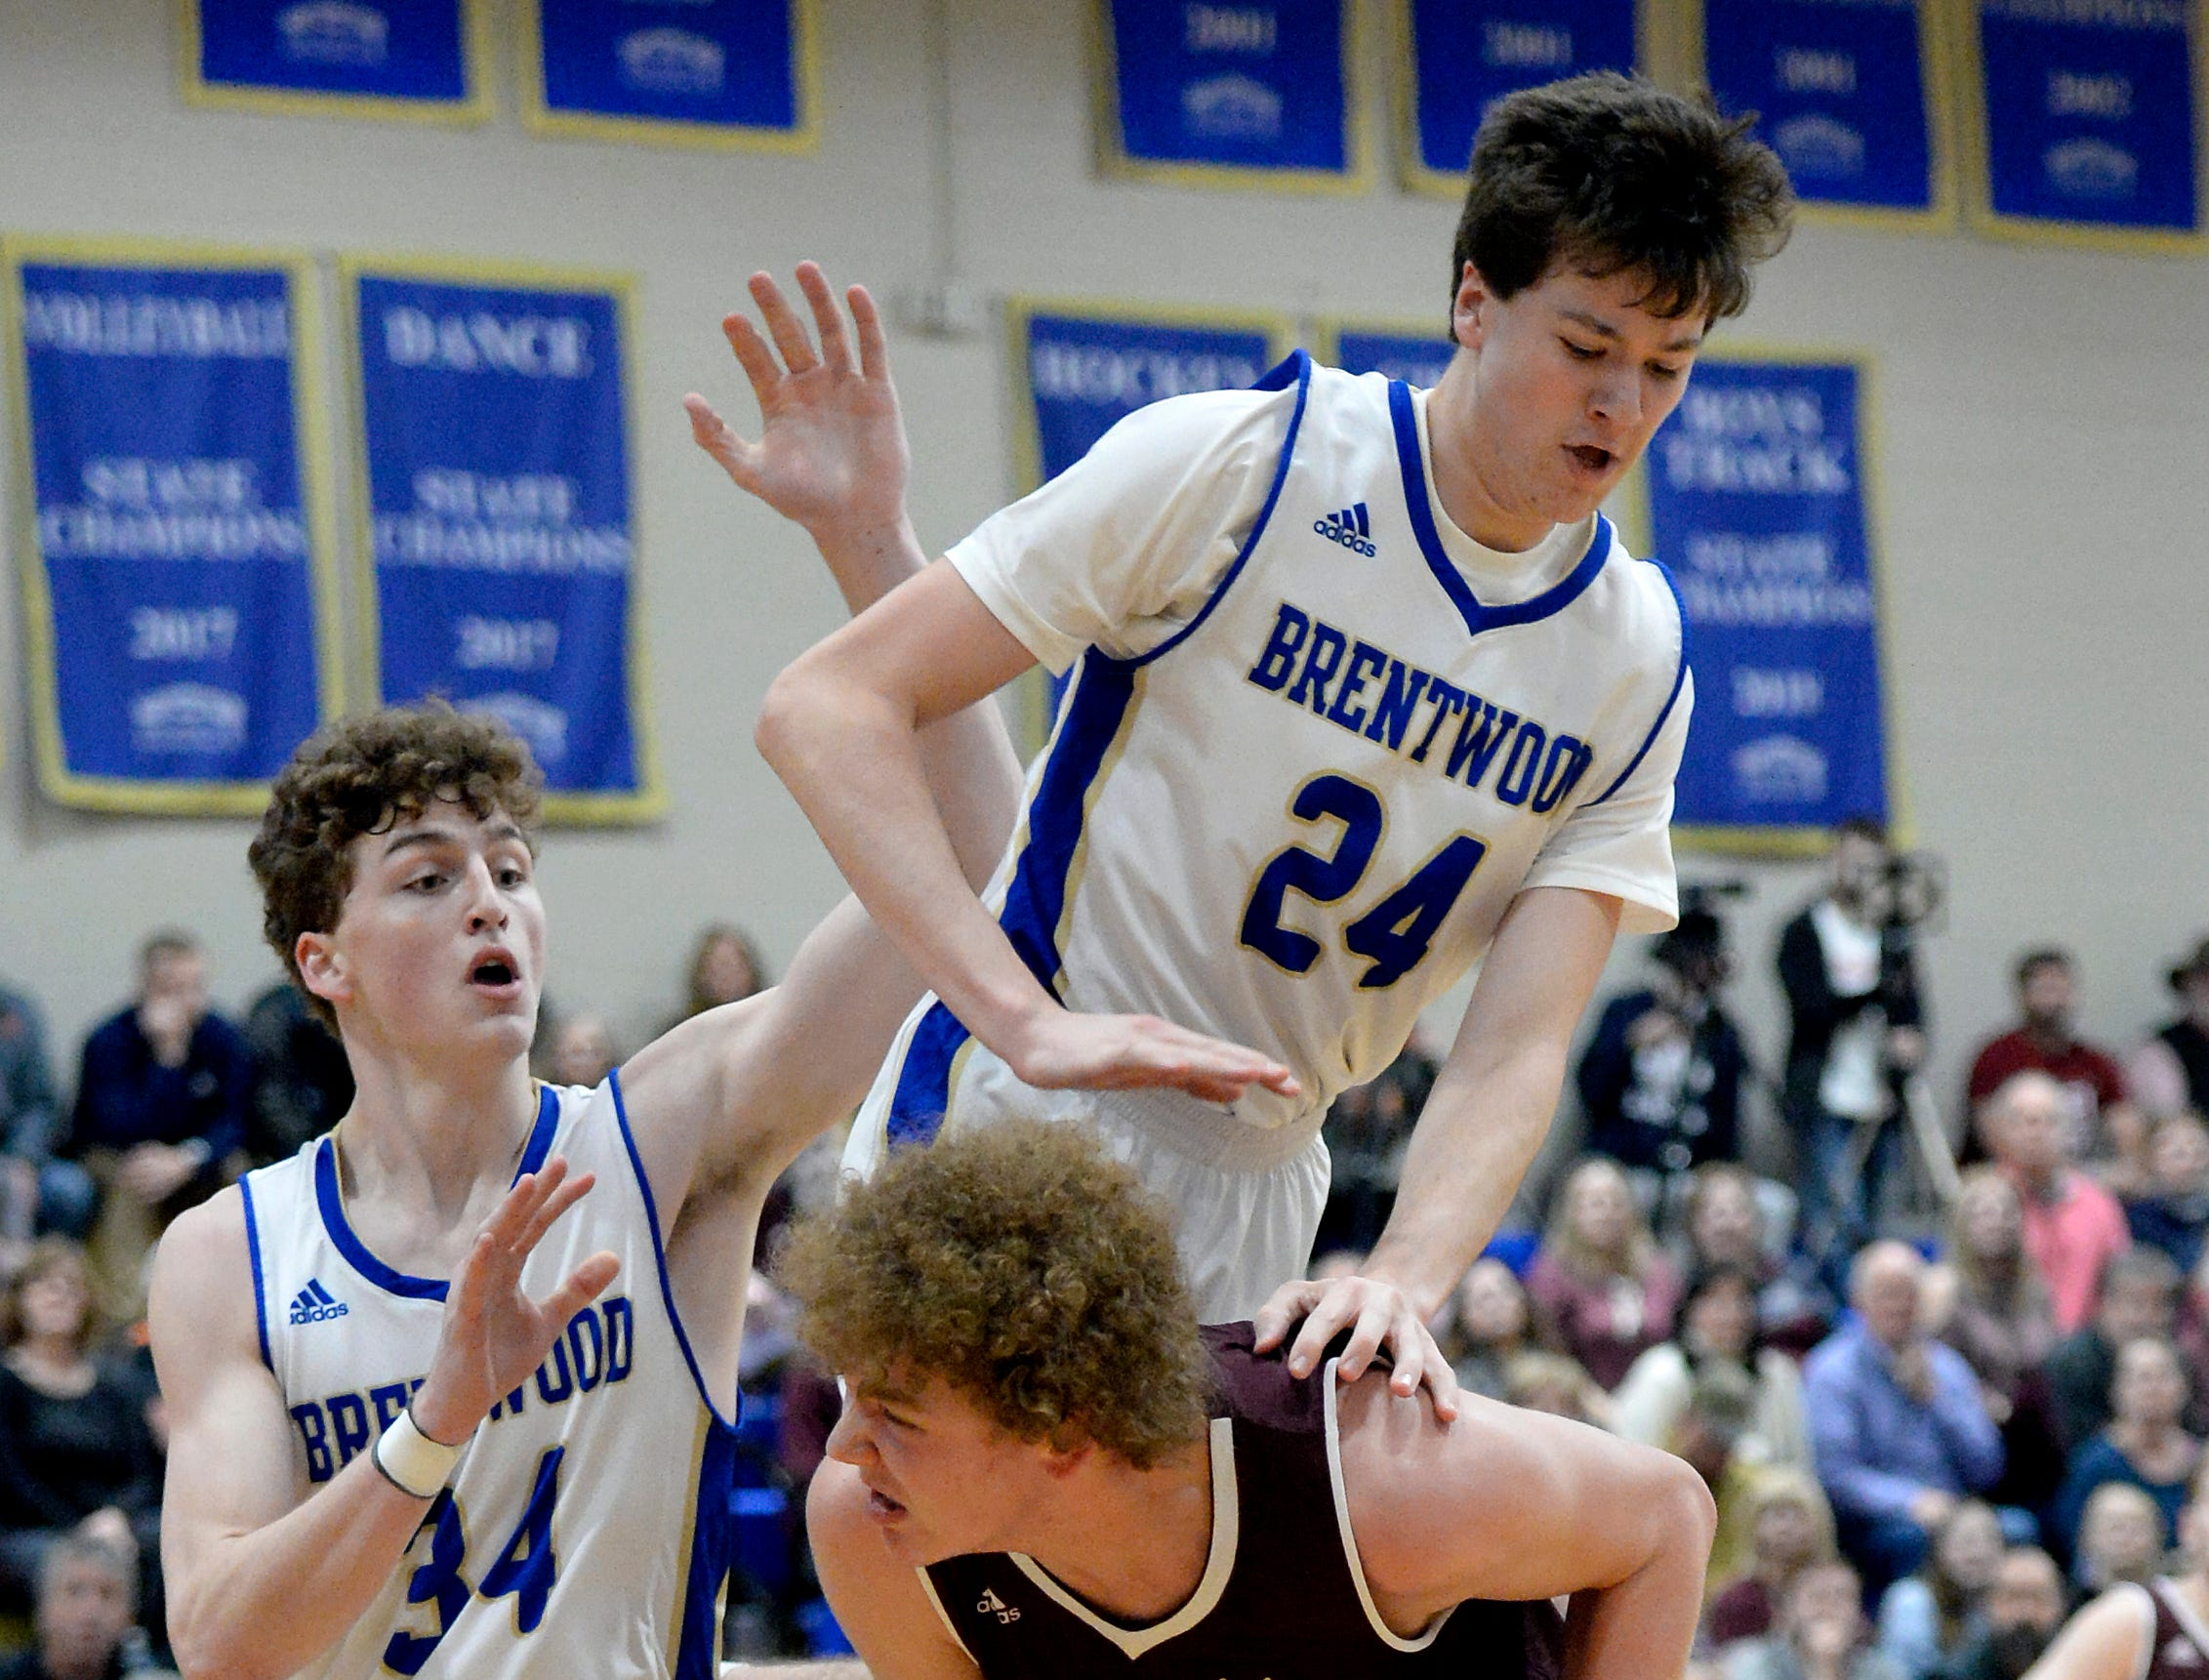 Brentwood forward Cole Massey (24) falls on Franklin forward Matt Thurman (32) fouling Thurman during the first half of an High School basketball game Tuesday, Jan. 15, 2019, in Brentwood, Tenn.